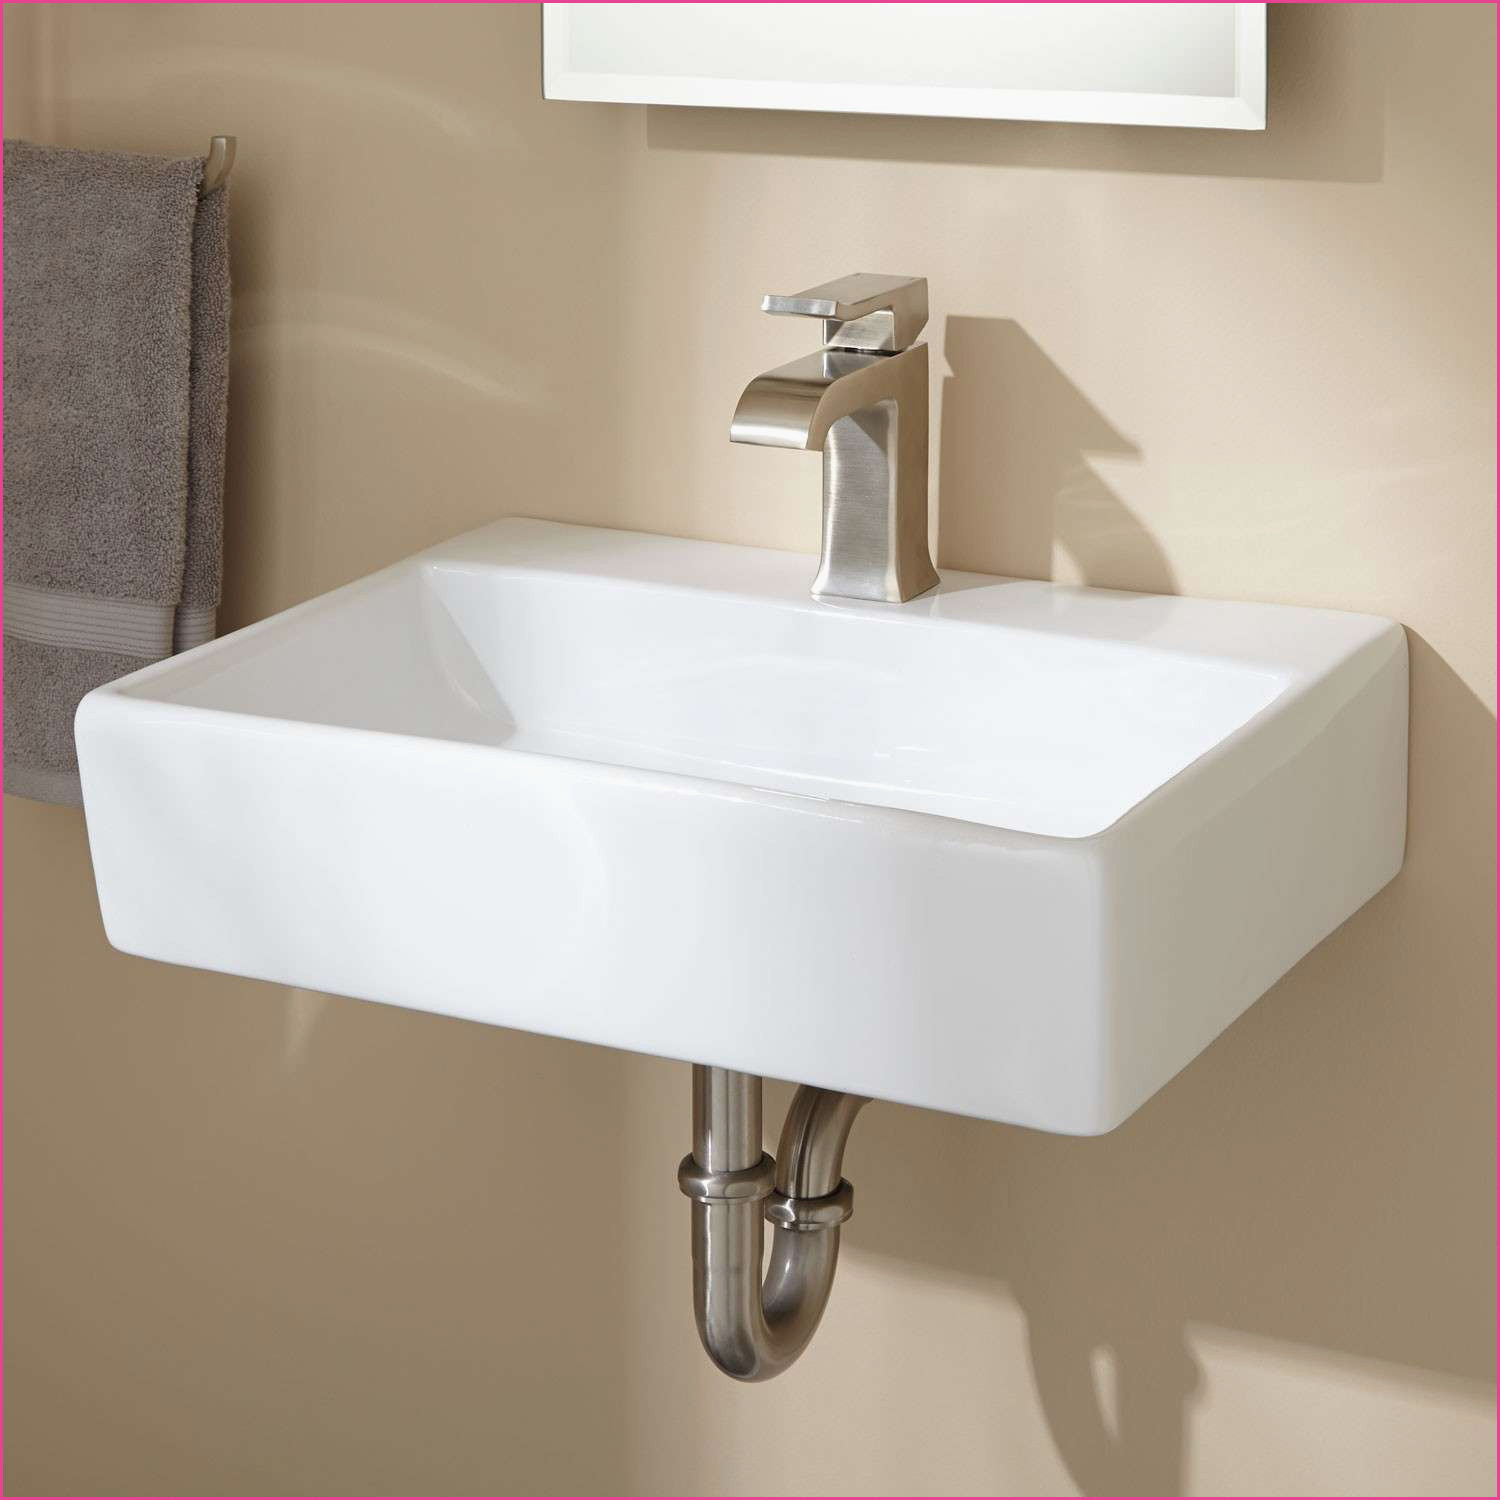 Best ideas about Small Bathroom Sink . Save or Pin Fresh Home Depot Small Bathroom Sinks – REFLEXCAL Now.